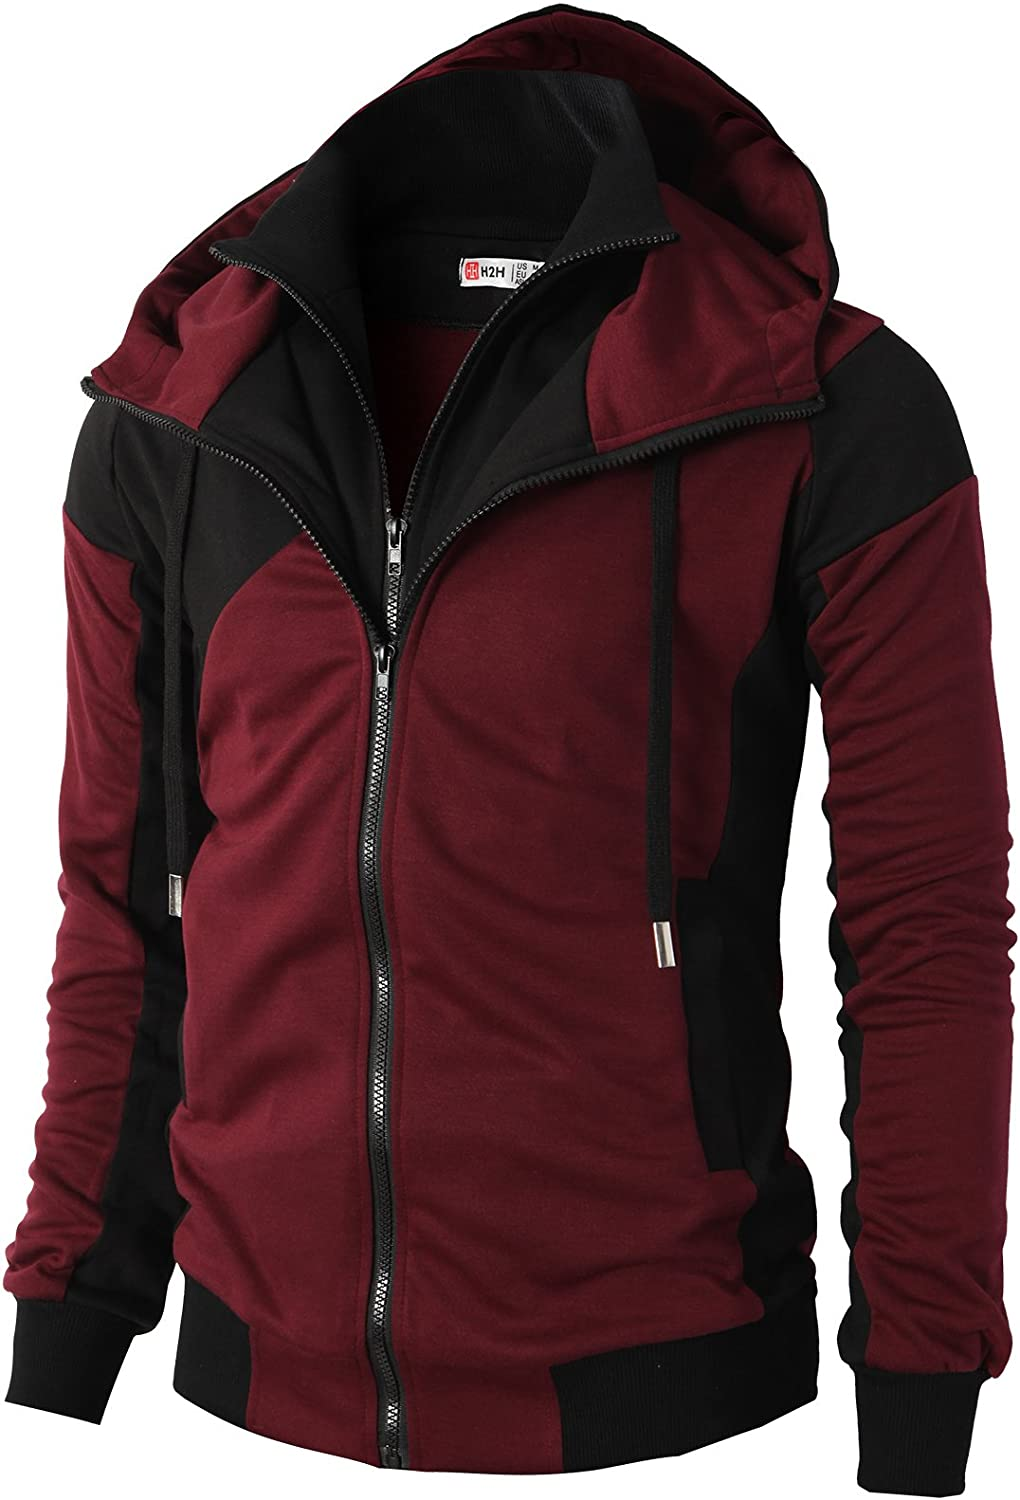 H2H Mens Fashion Double Zipper Closer Hoodie ZipUp with Two Tone color